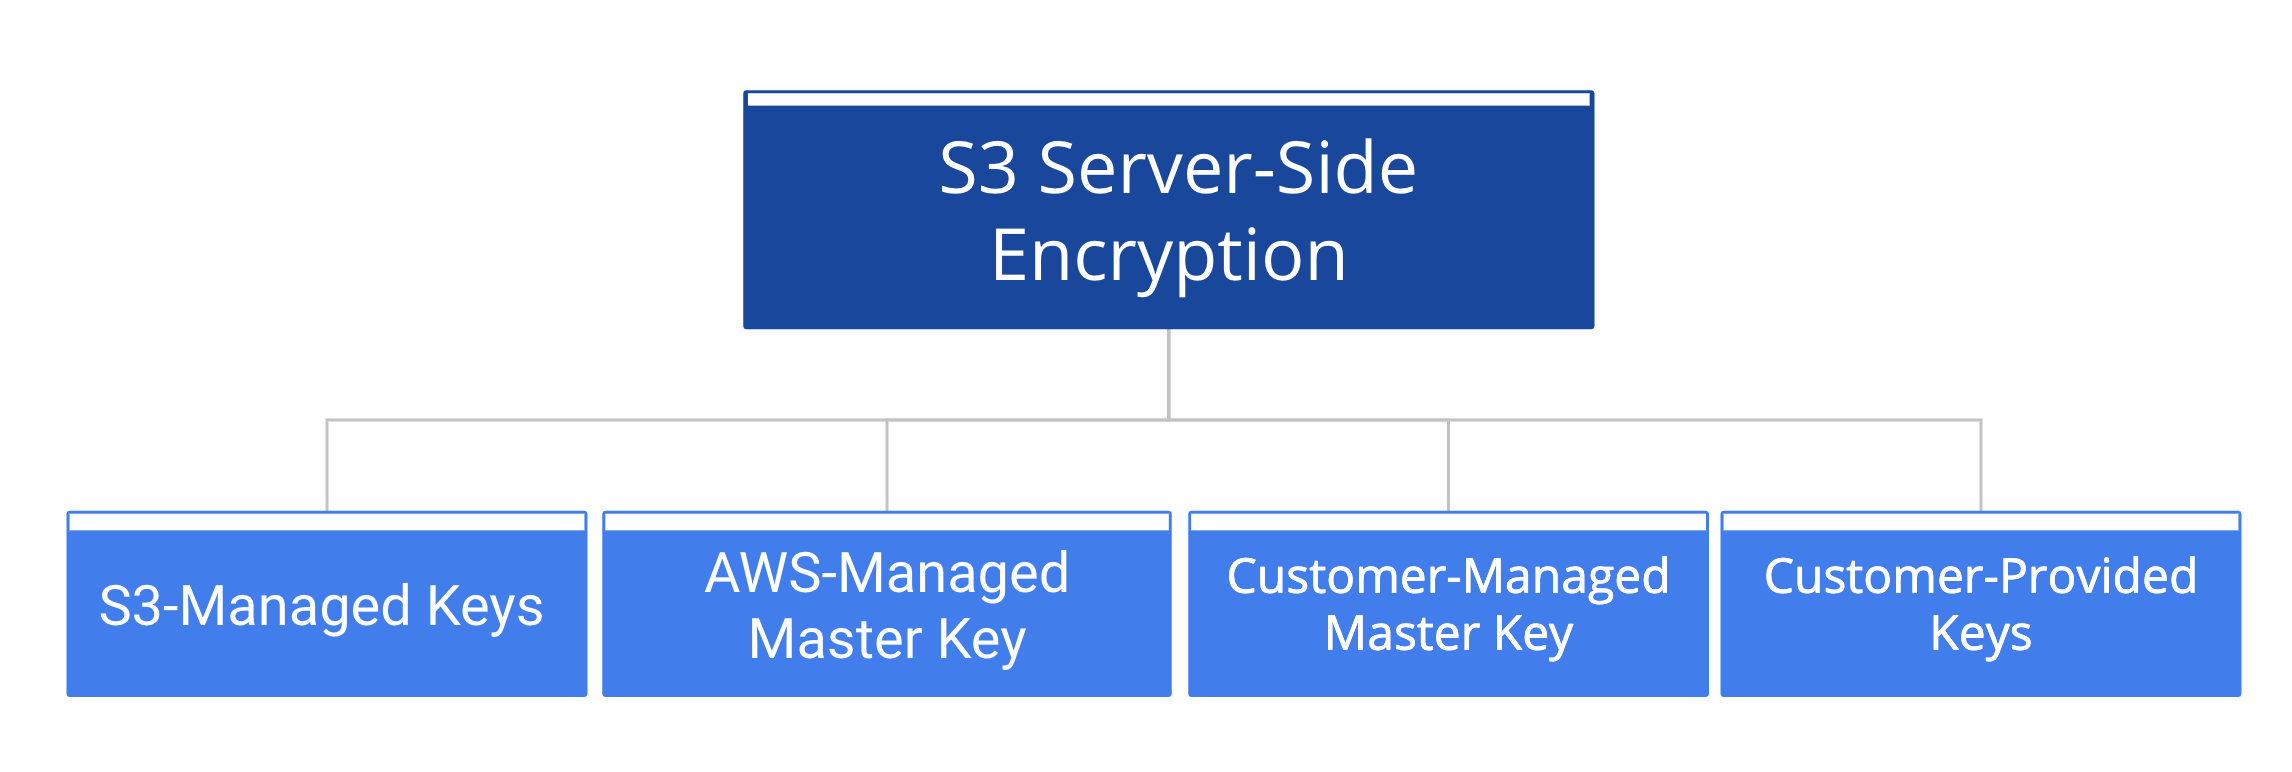 There are four types of S3 Server-Side Encryption.